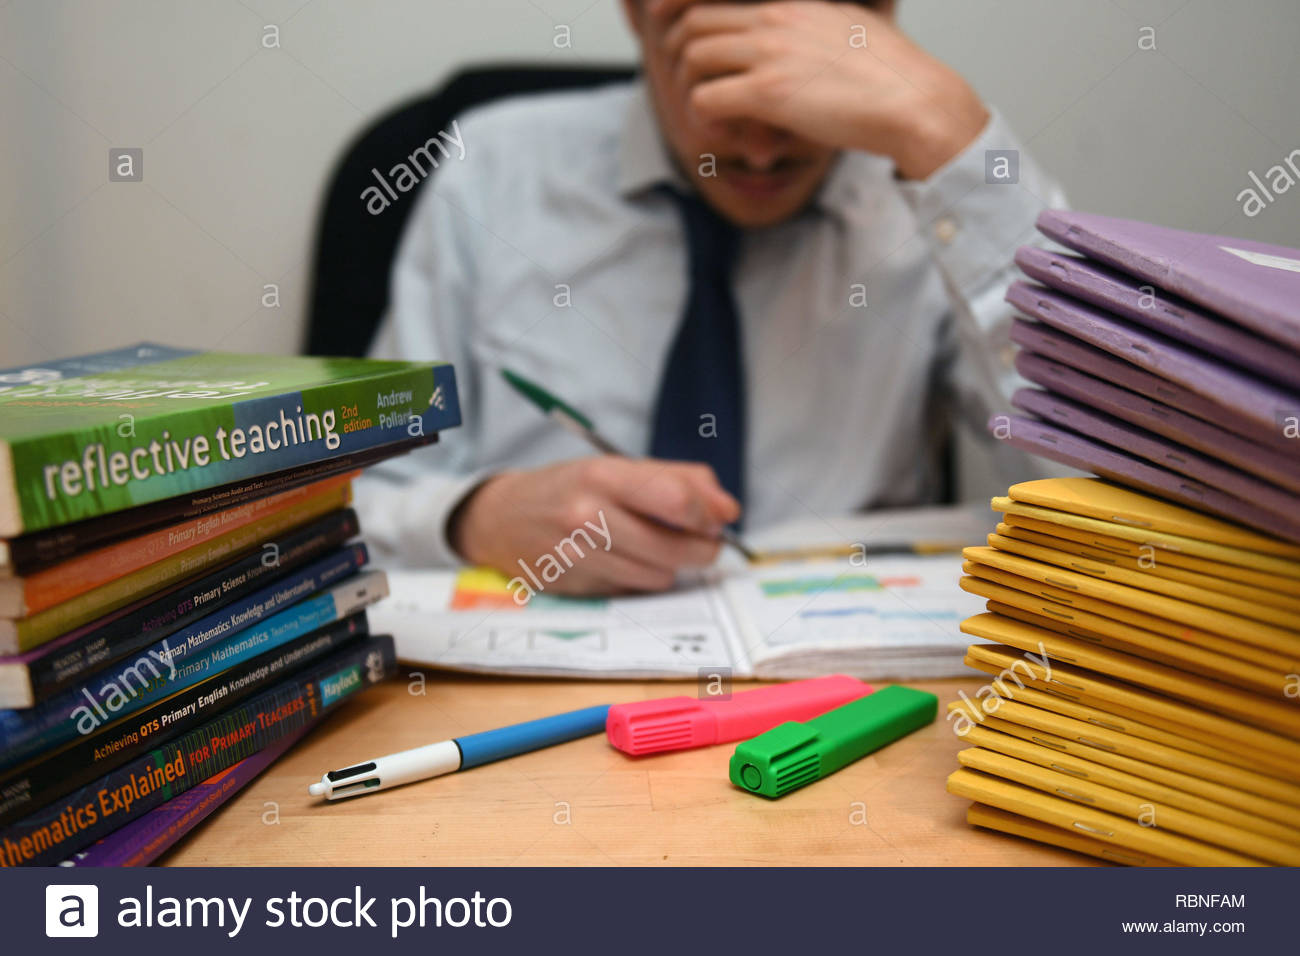 File photo dated 05/03/17 of a teacher next to a pile of